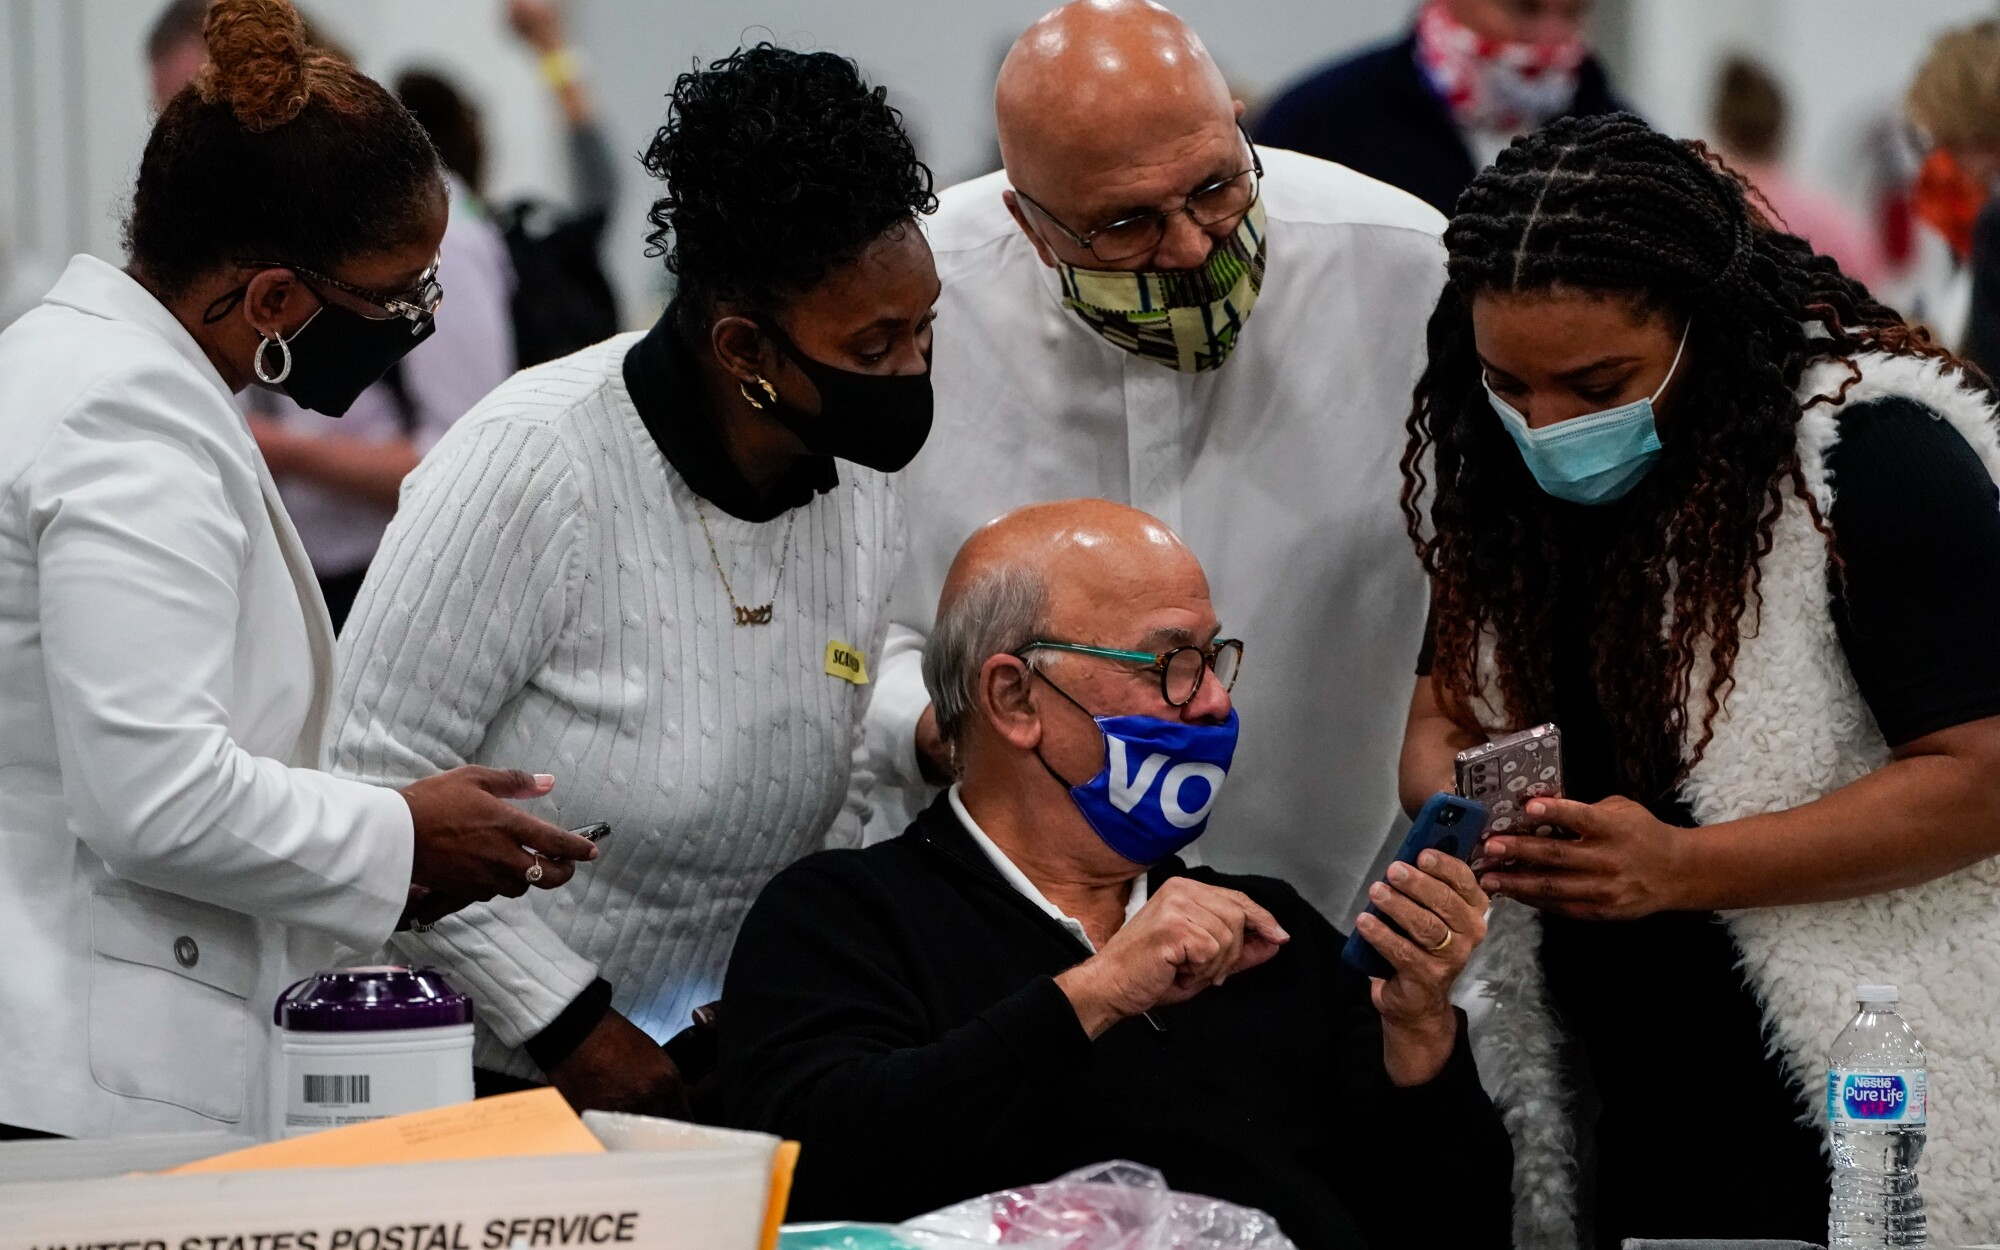 Election workers look at their cellphones